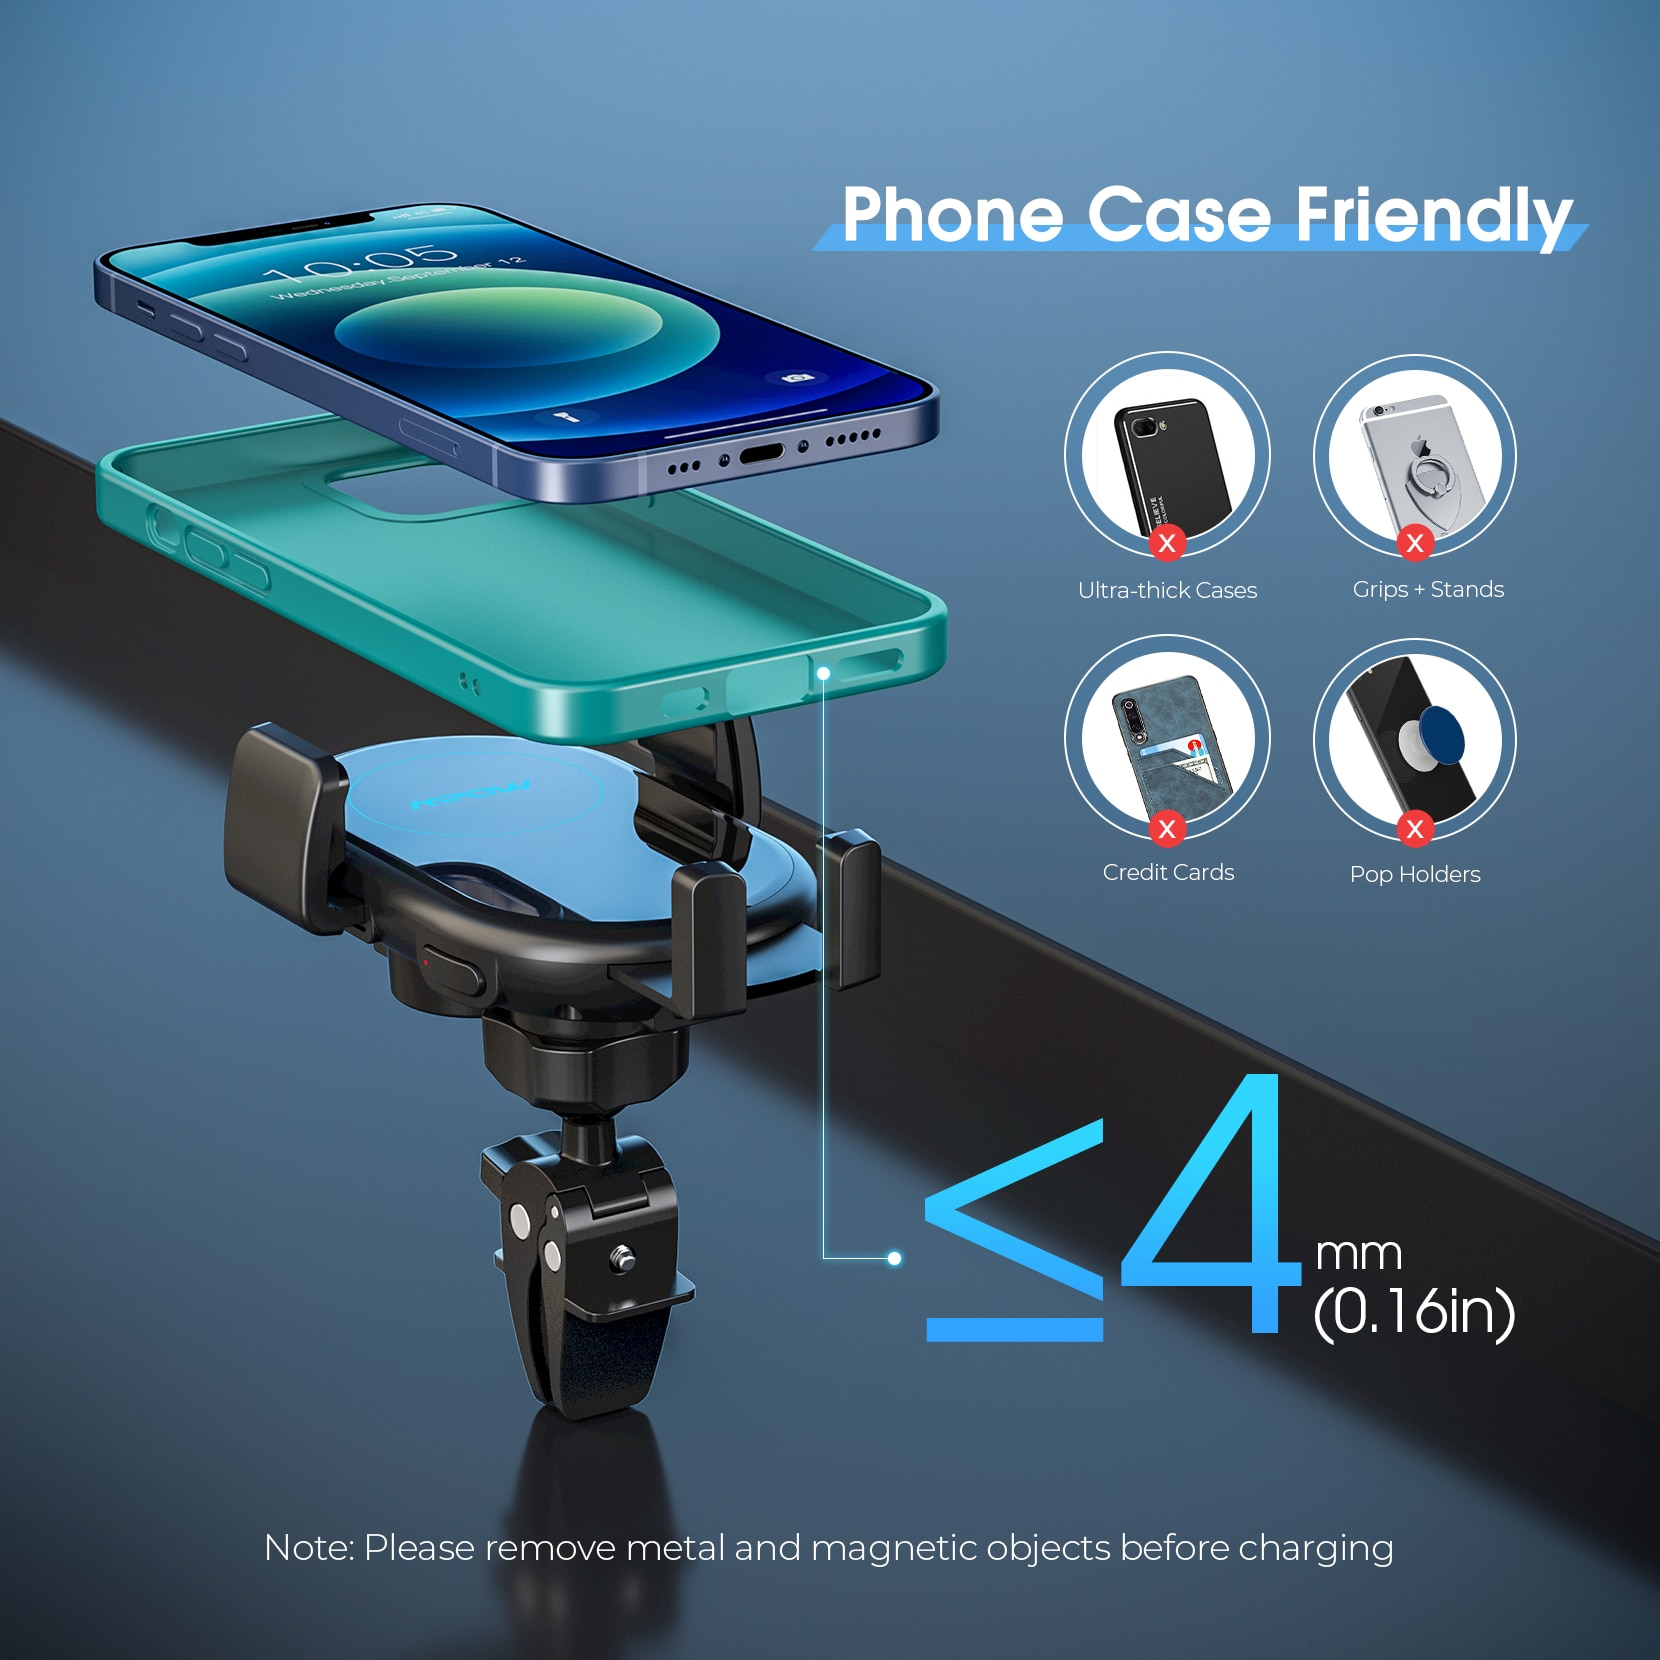 H28ad5e32fad242038b08662bae95f811J - Mpow Wireless Car Charger Mount 10W Auto-clamping Qi Fast Charging Car Mount with Power Storage Car Phone Holder for iPhone 12